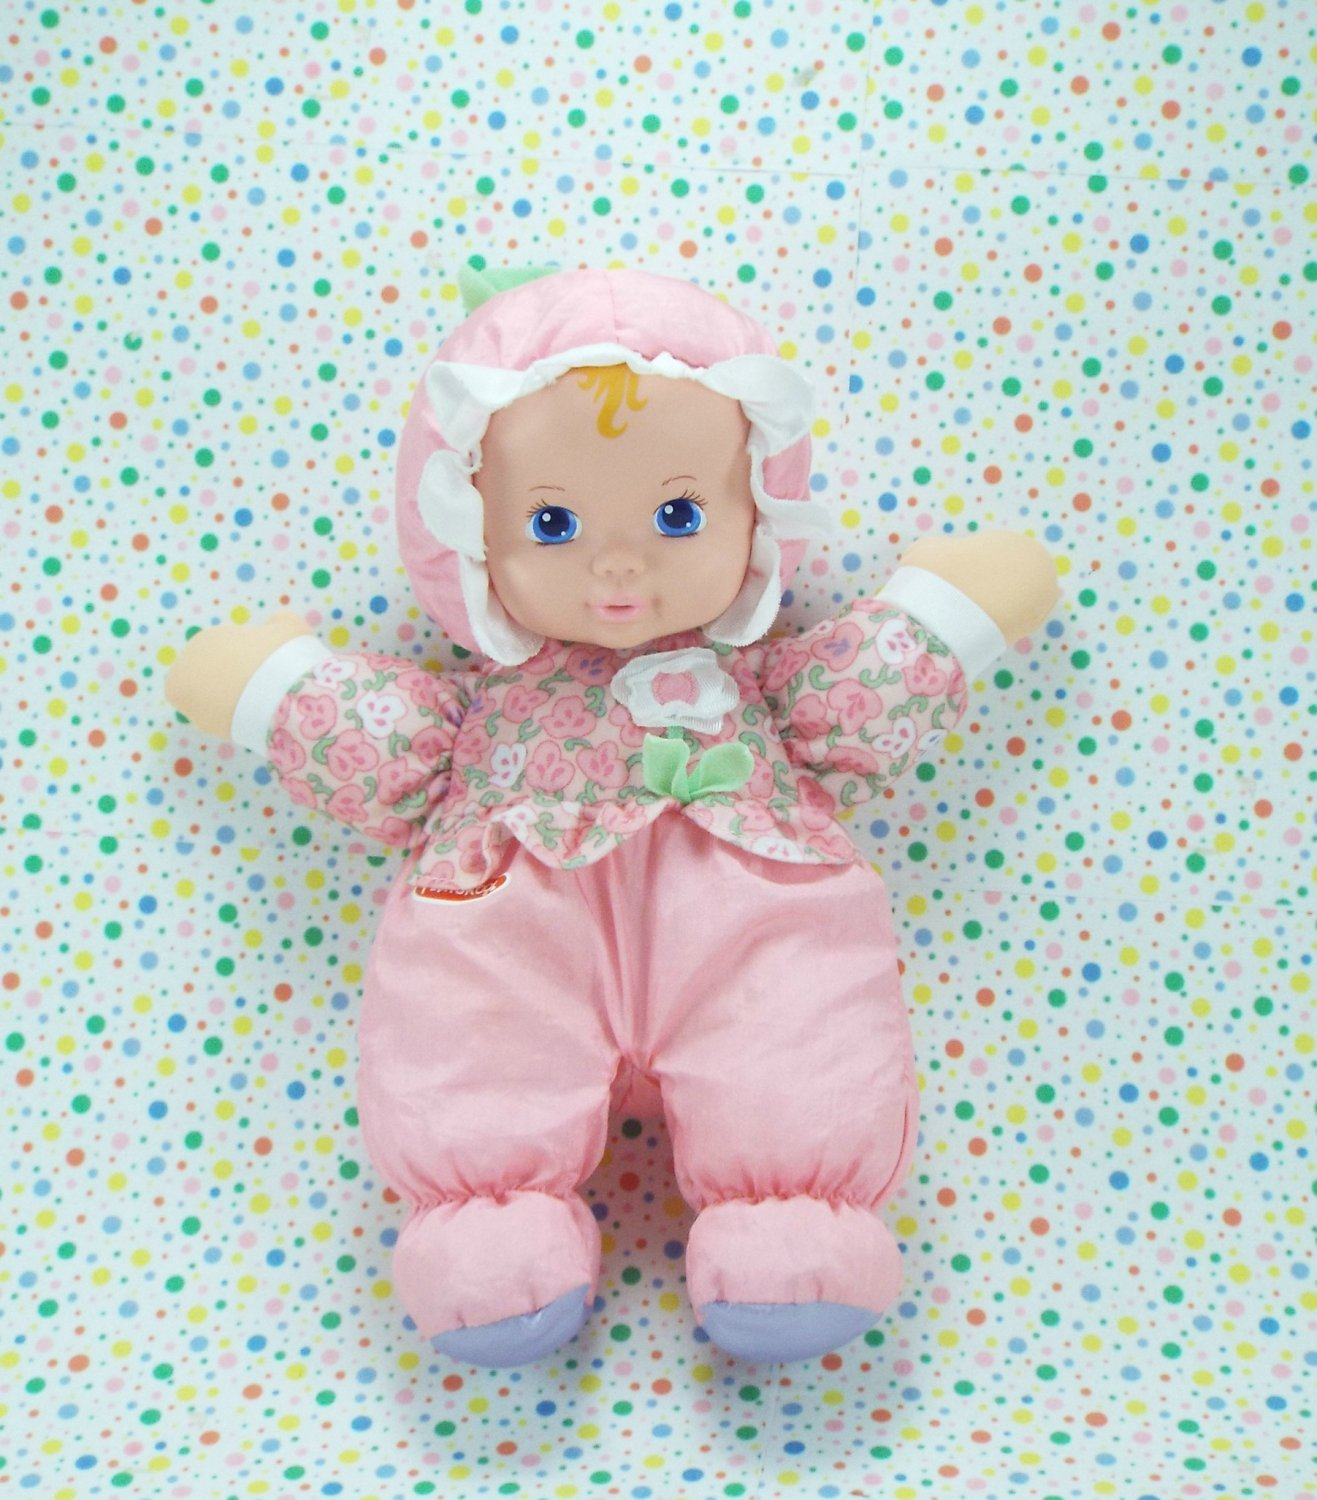 10 16 Sold Playskool My Very Soft Baby Doll Squeaky Baby Doll